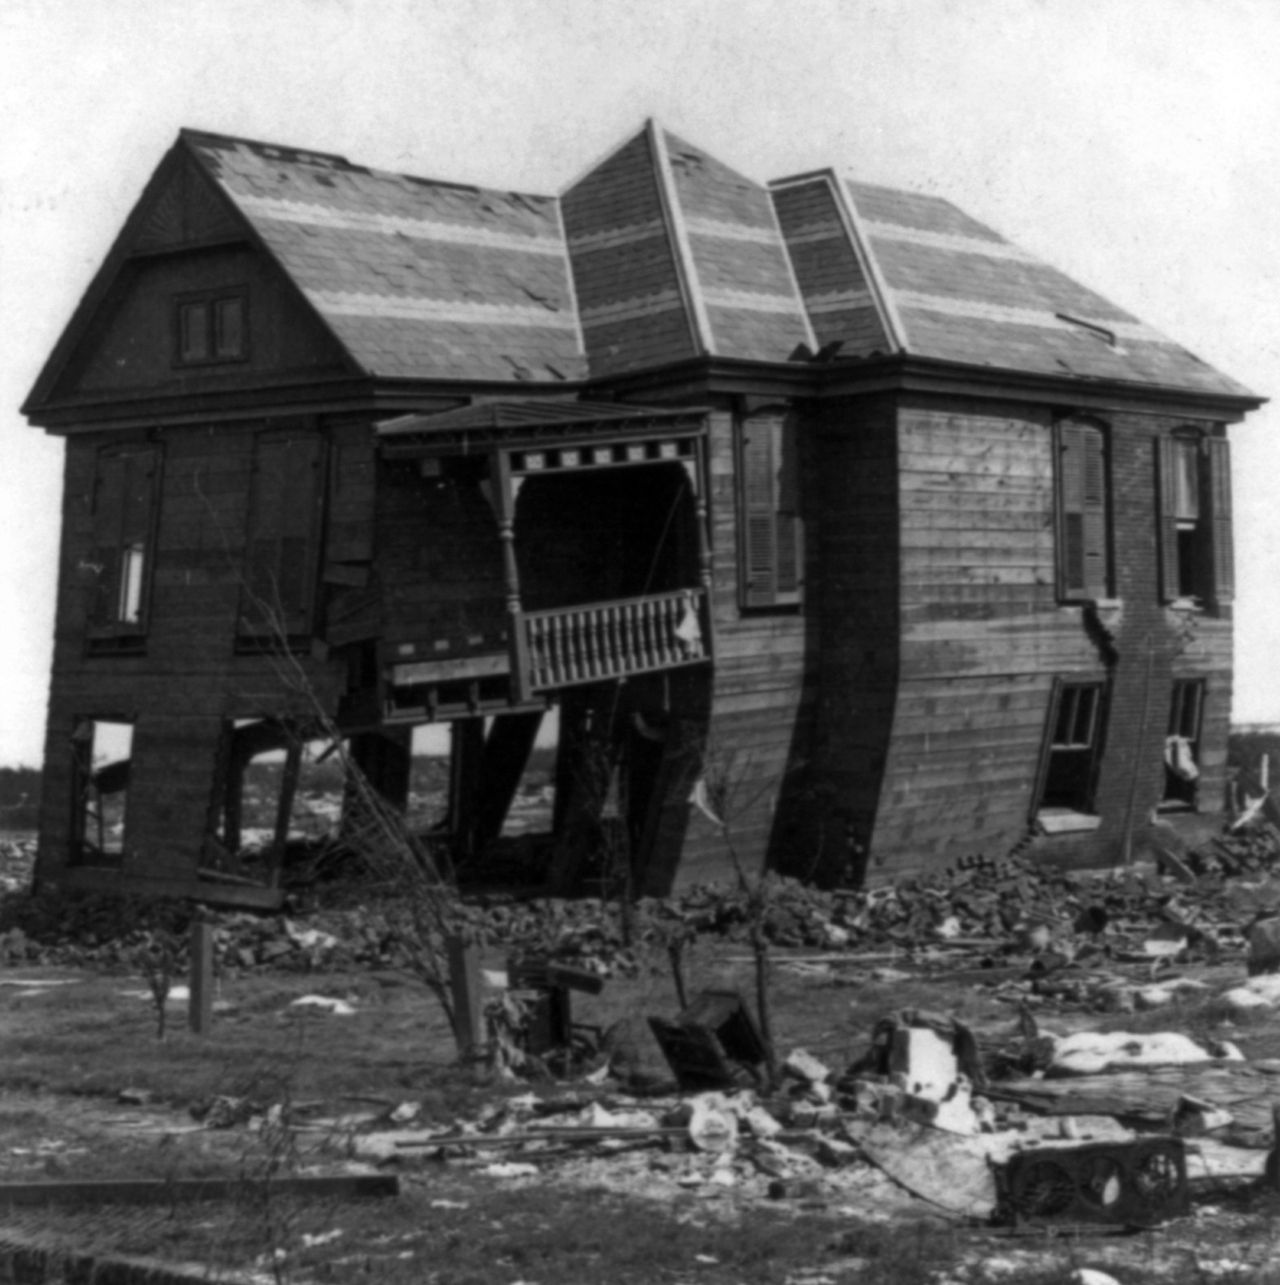 GALVESTON, 1900: The Only House Standing Near The Beach